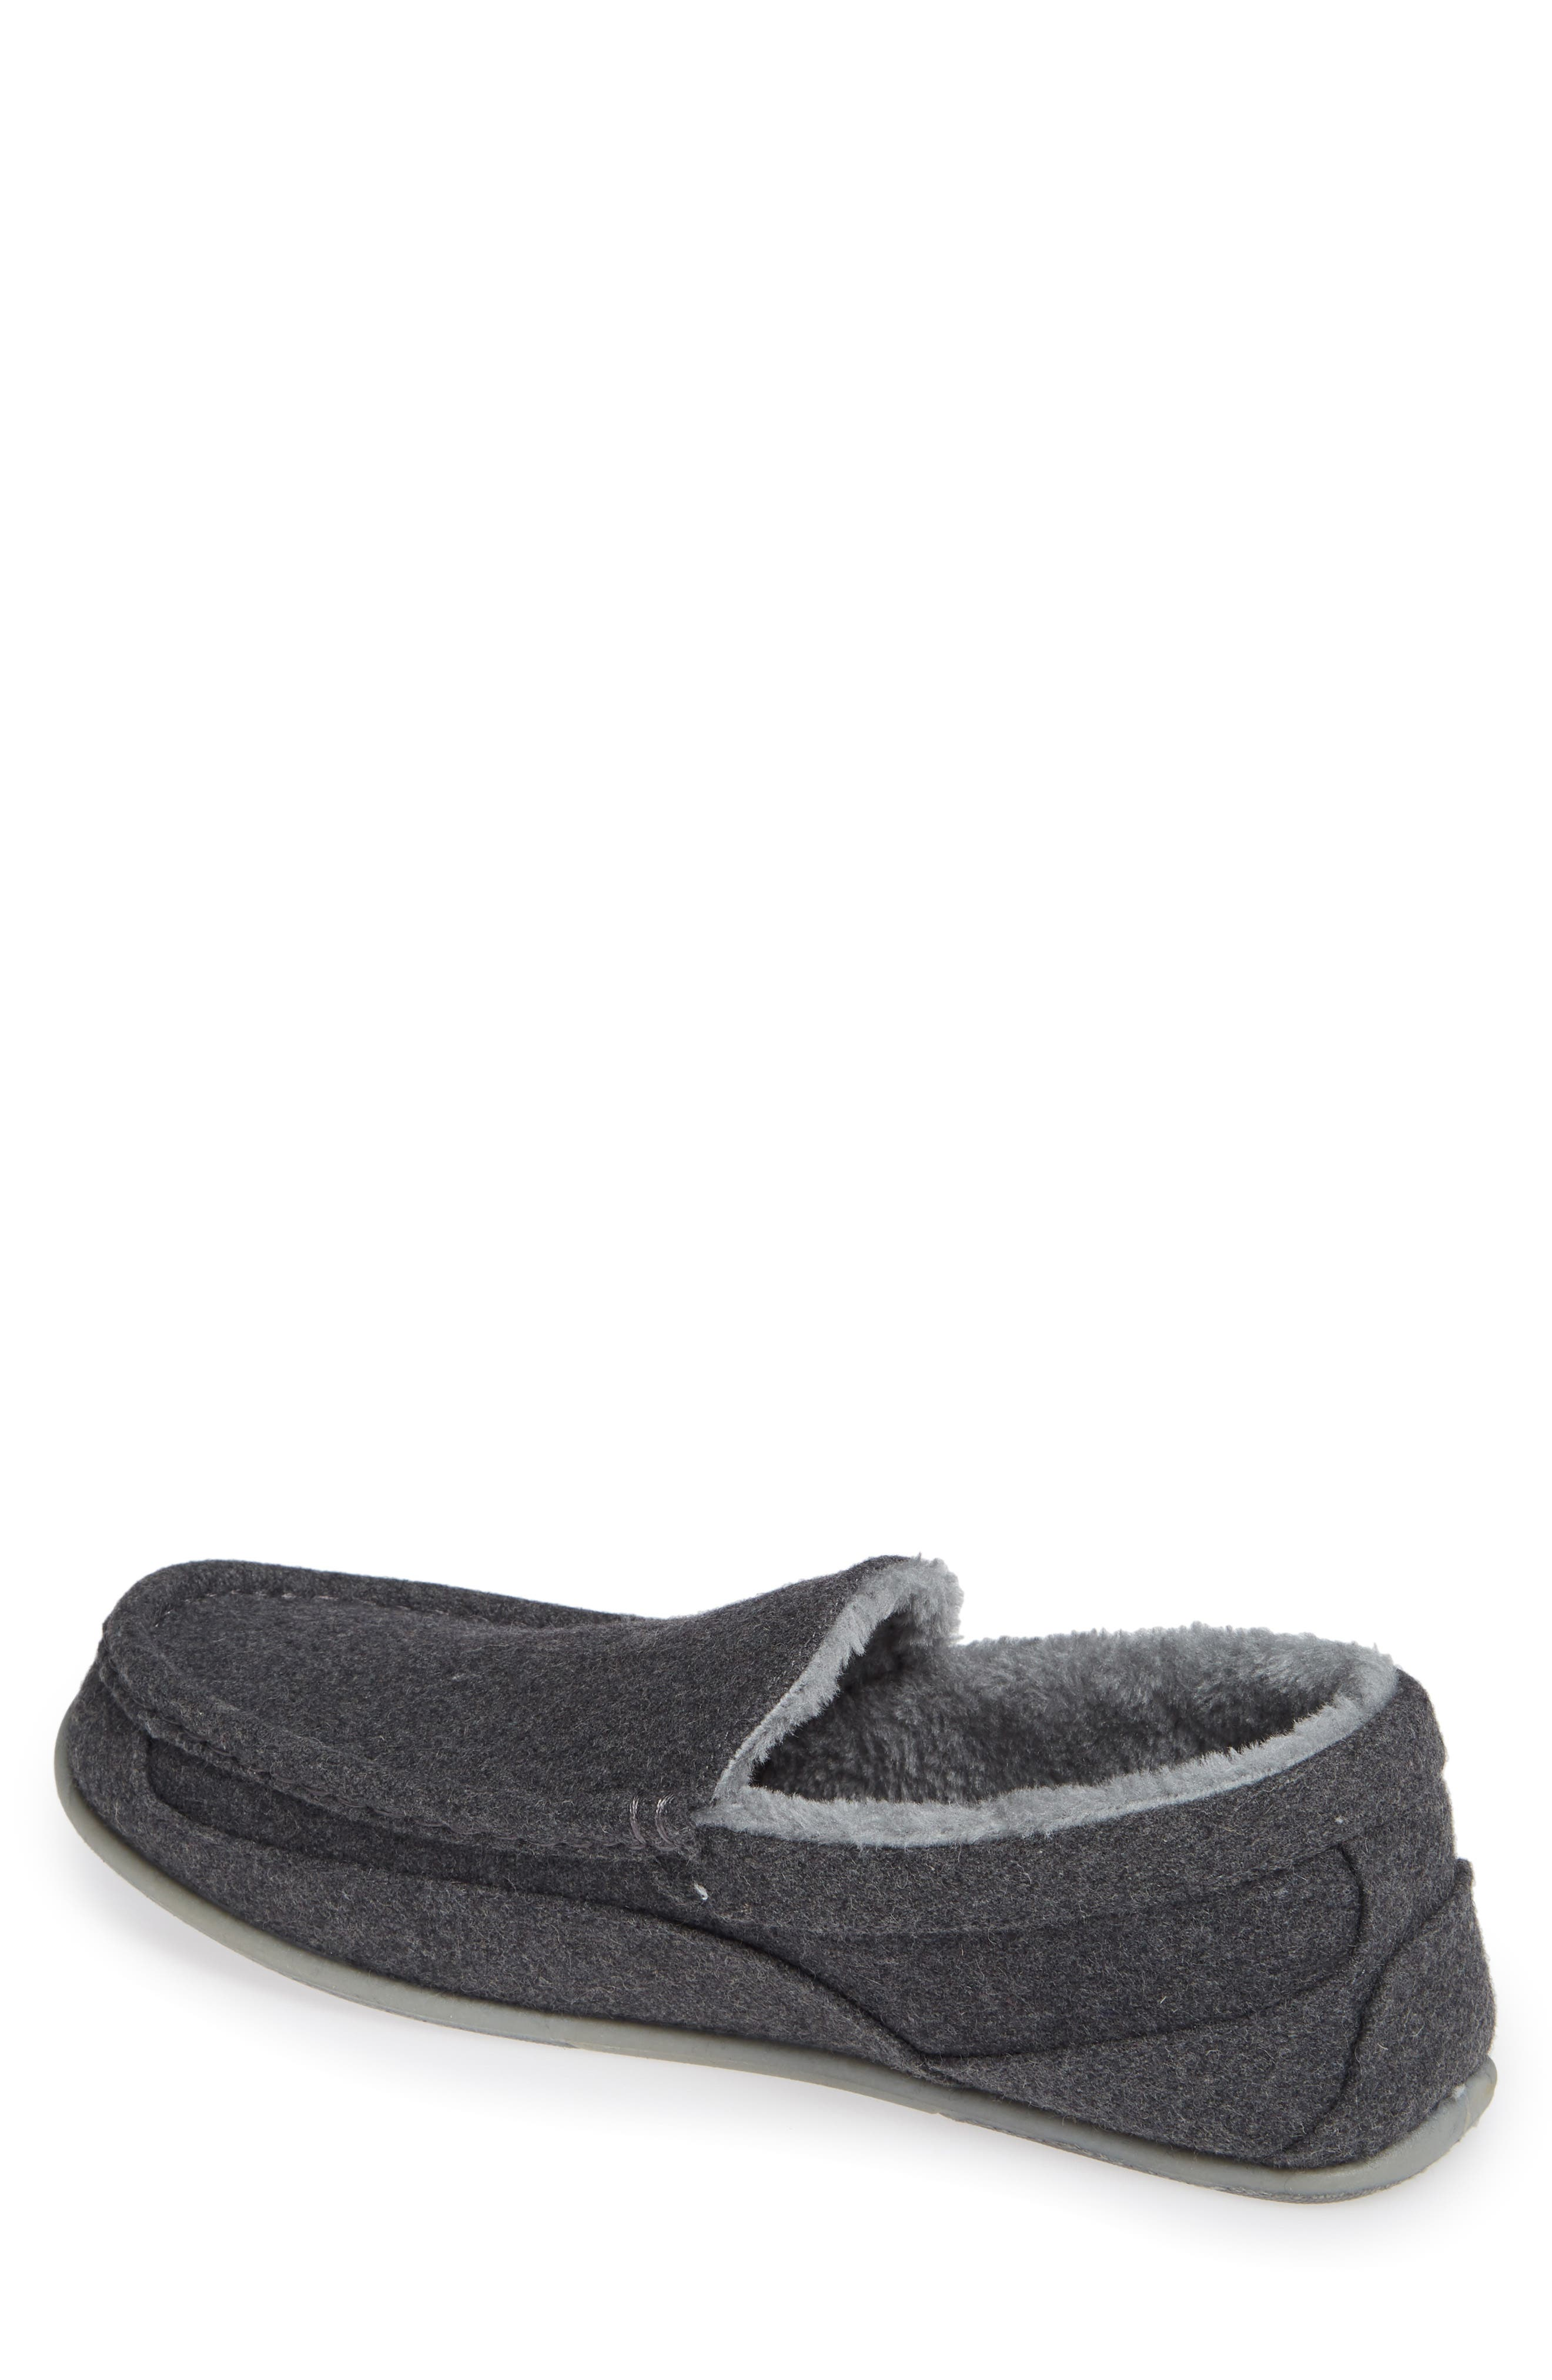 Spun Slipper,                             Alternate thumbnail 2, color,                             DARK GREY